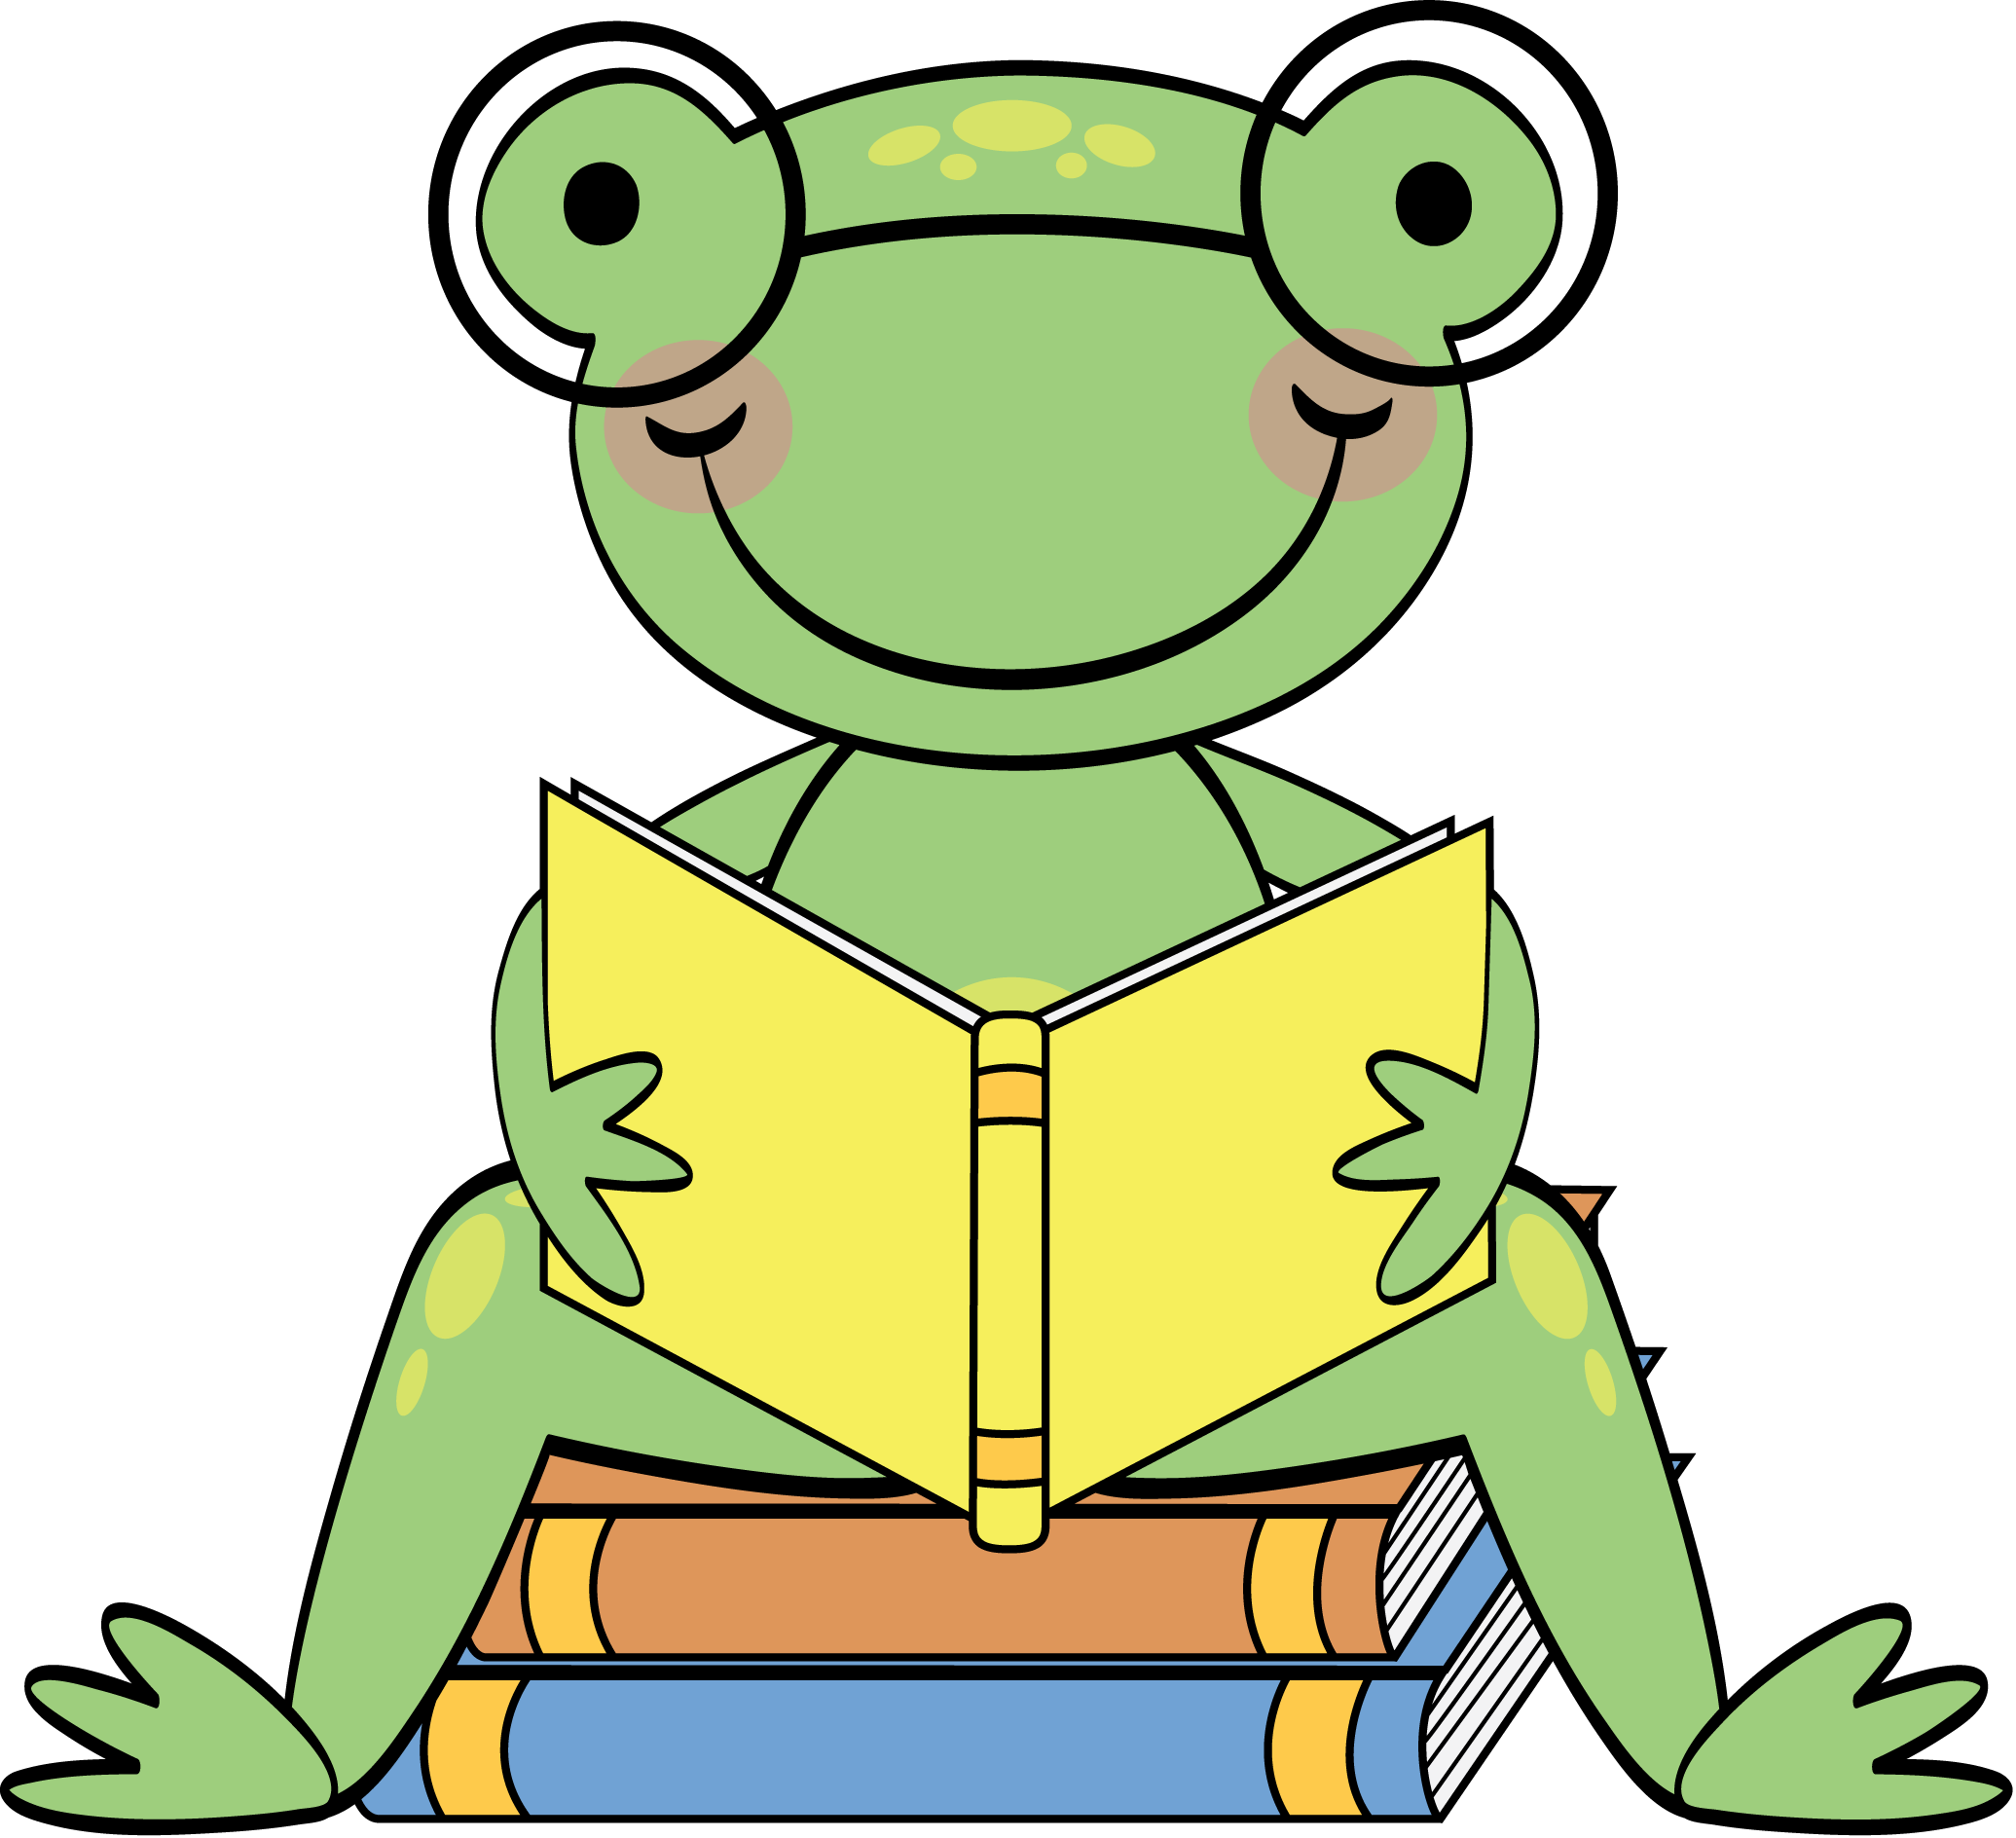 Frog in a crown clipart clip art library library http://sunnydaypublishing.com/books/ | All about books and reading ... clip art library library